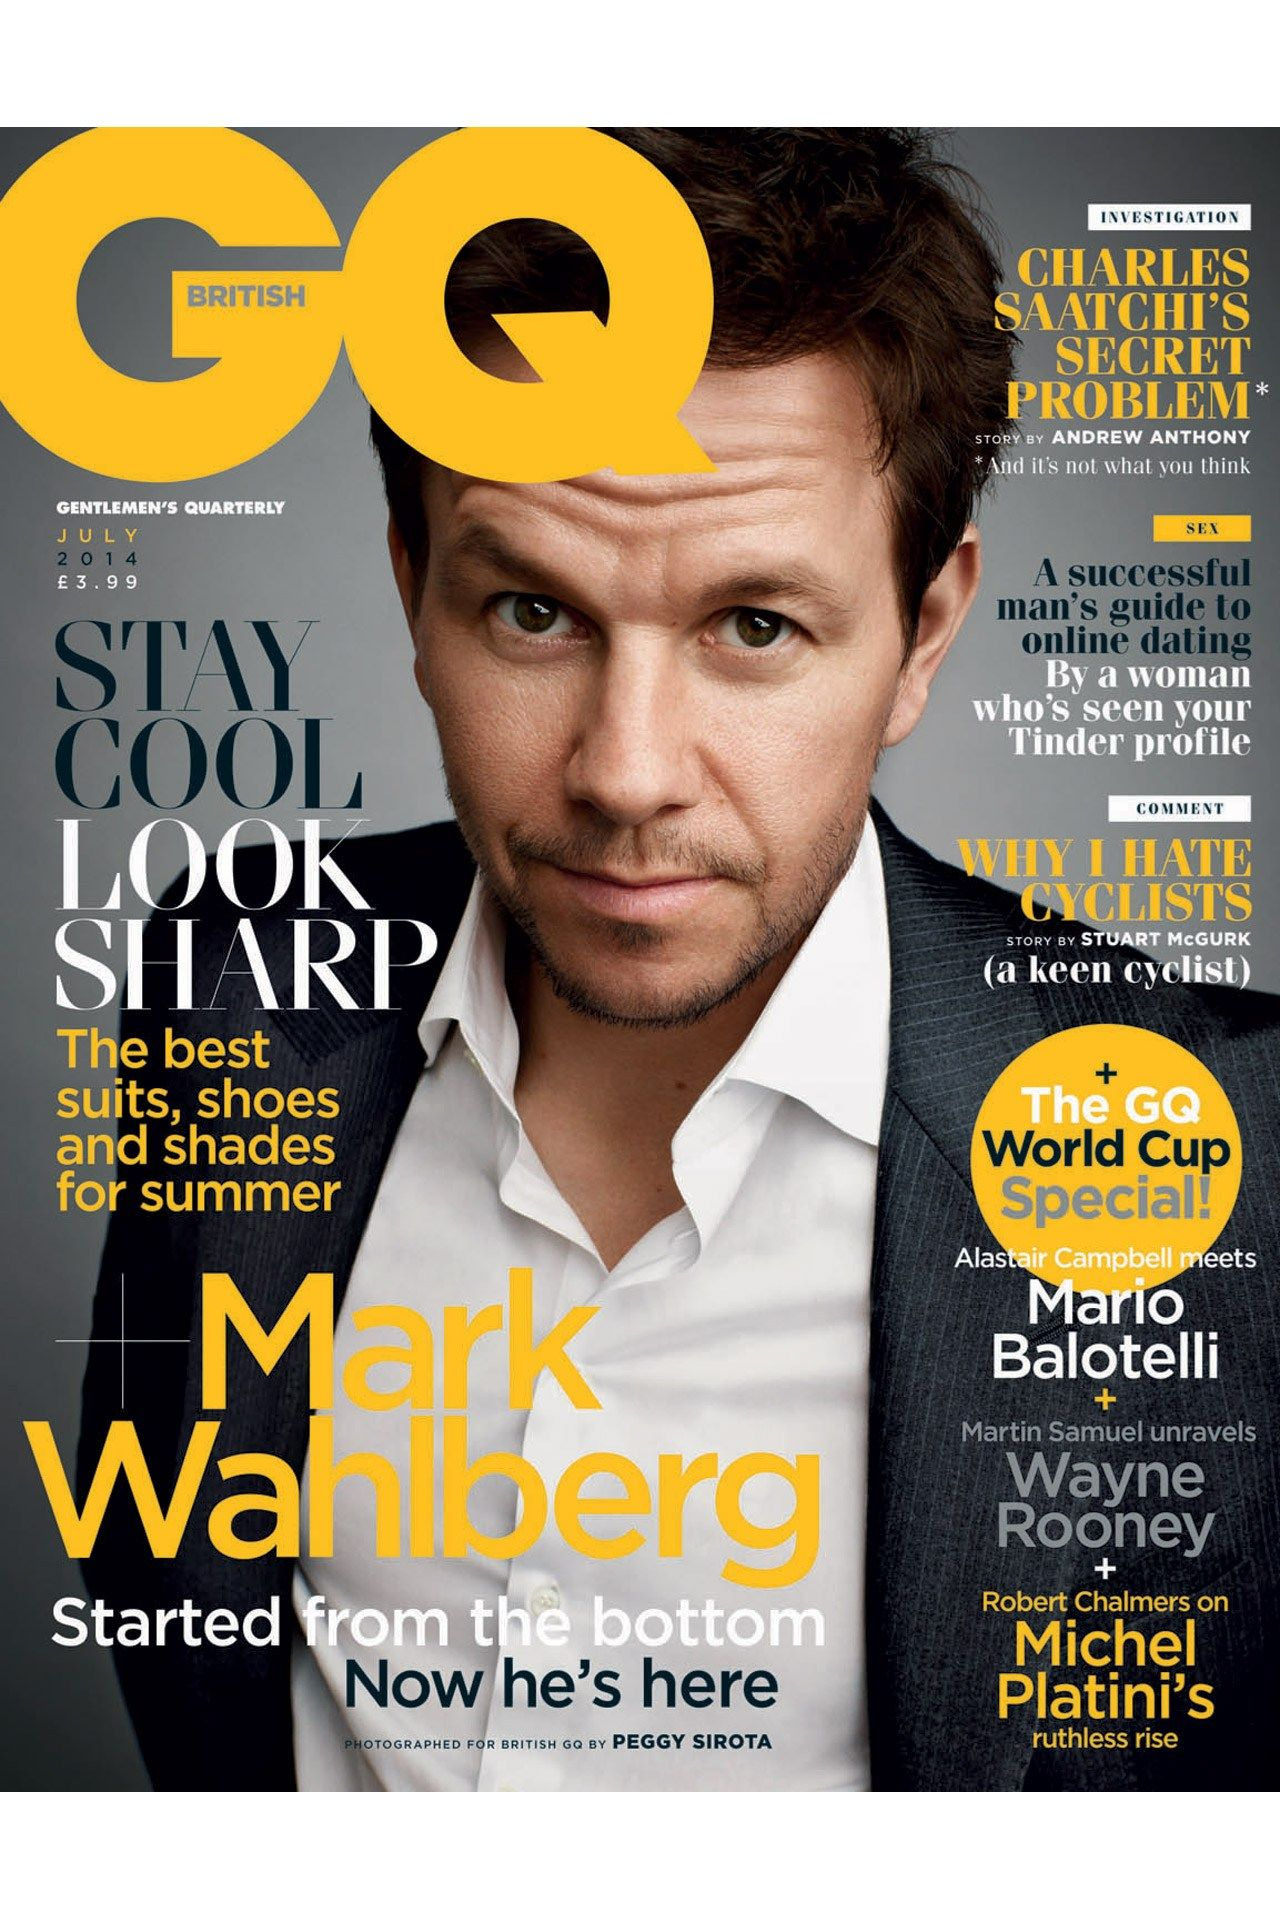 Gq Magazine The Secrets Of R Kelly: Mark Wahlberg Covers GQ!